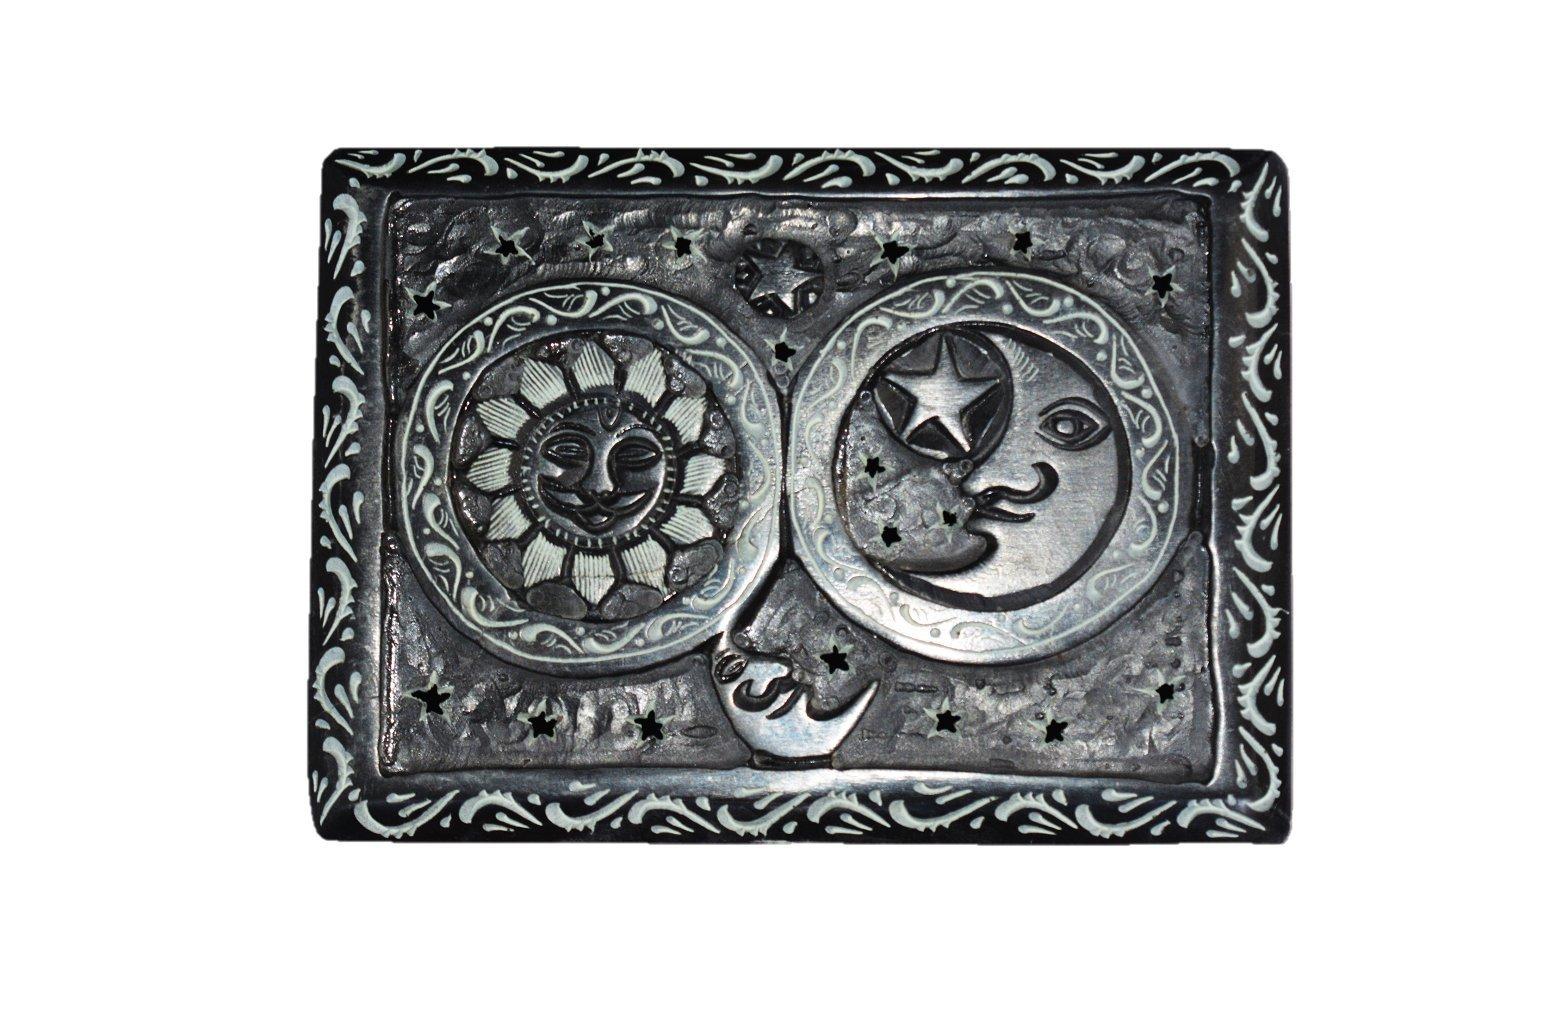 ALABASTER MARBLE Sun Moon Carved Decorative Marble Box For Jewellery Storage/Gift Box